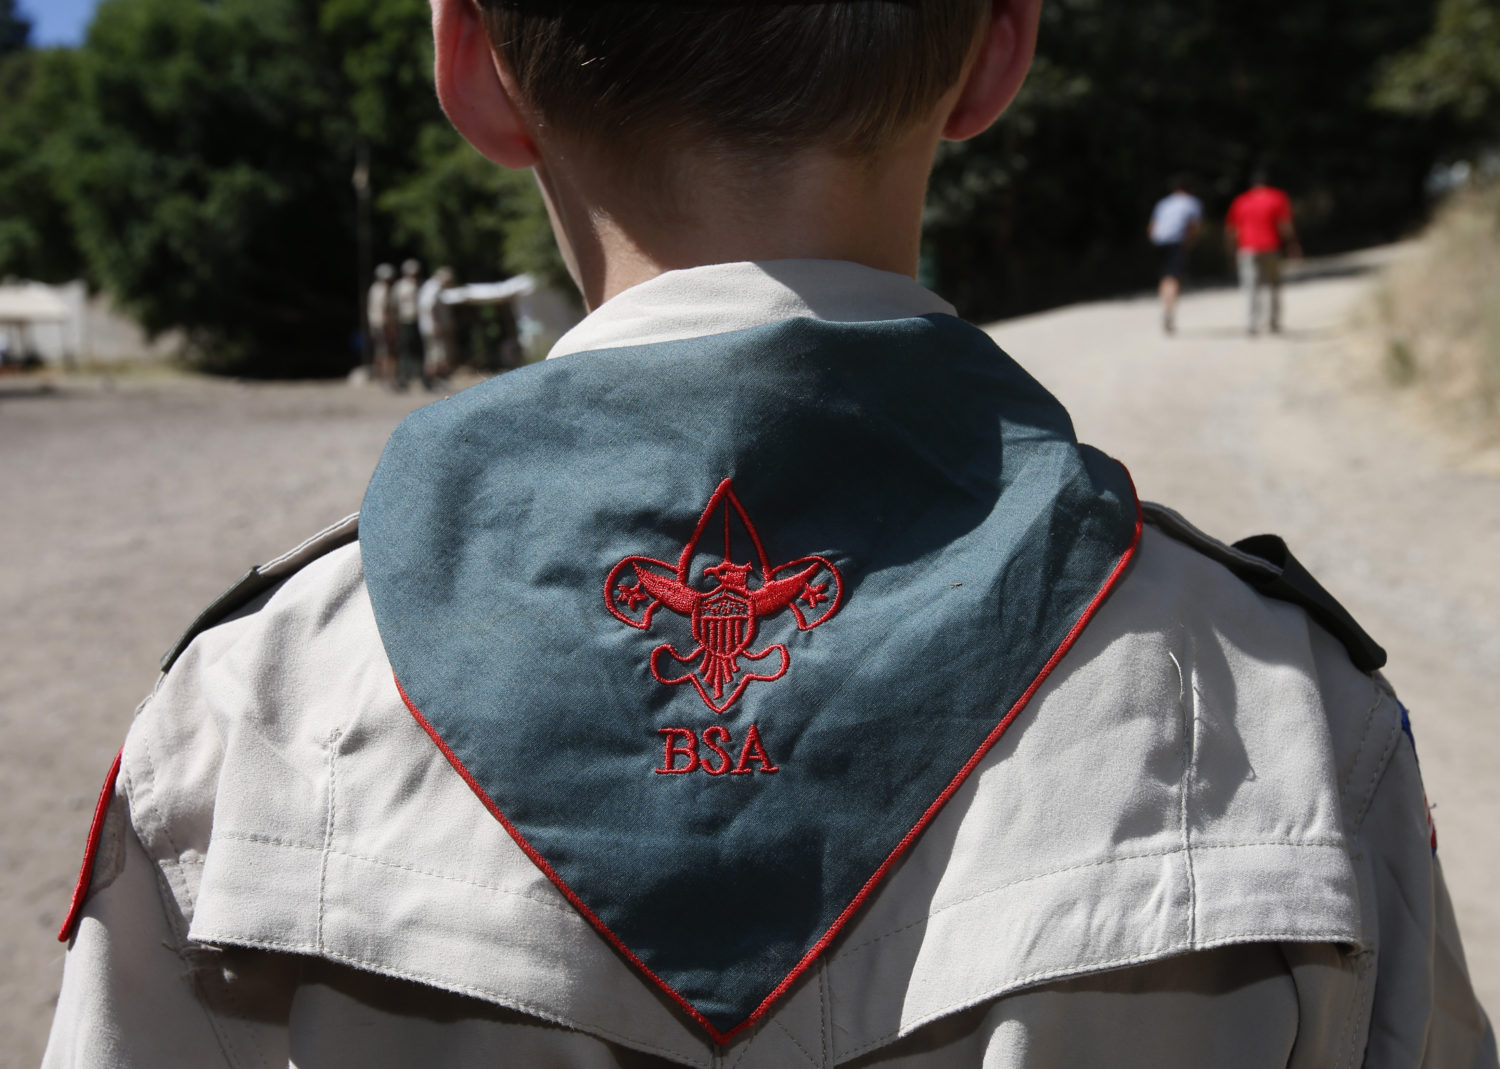 The Boy Scouts of America last week changed its policy to allow trans boys enter its ranks